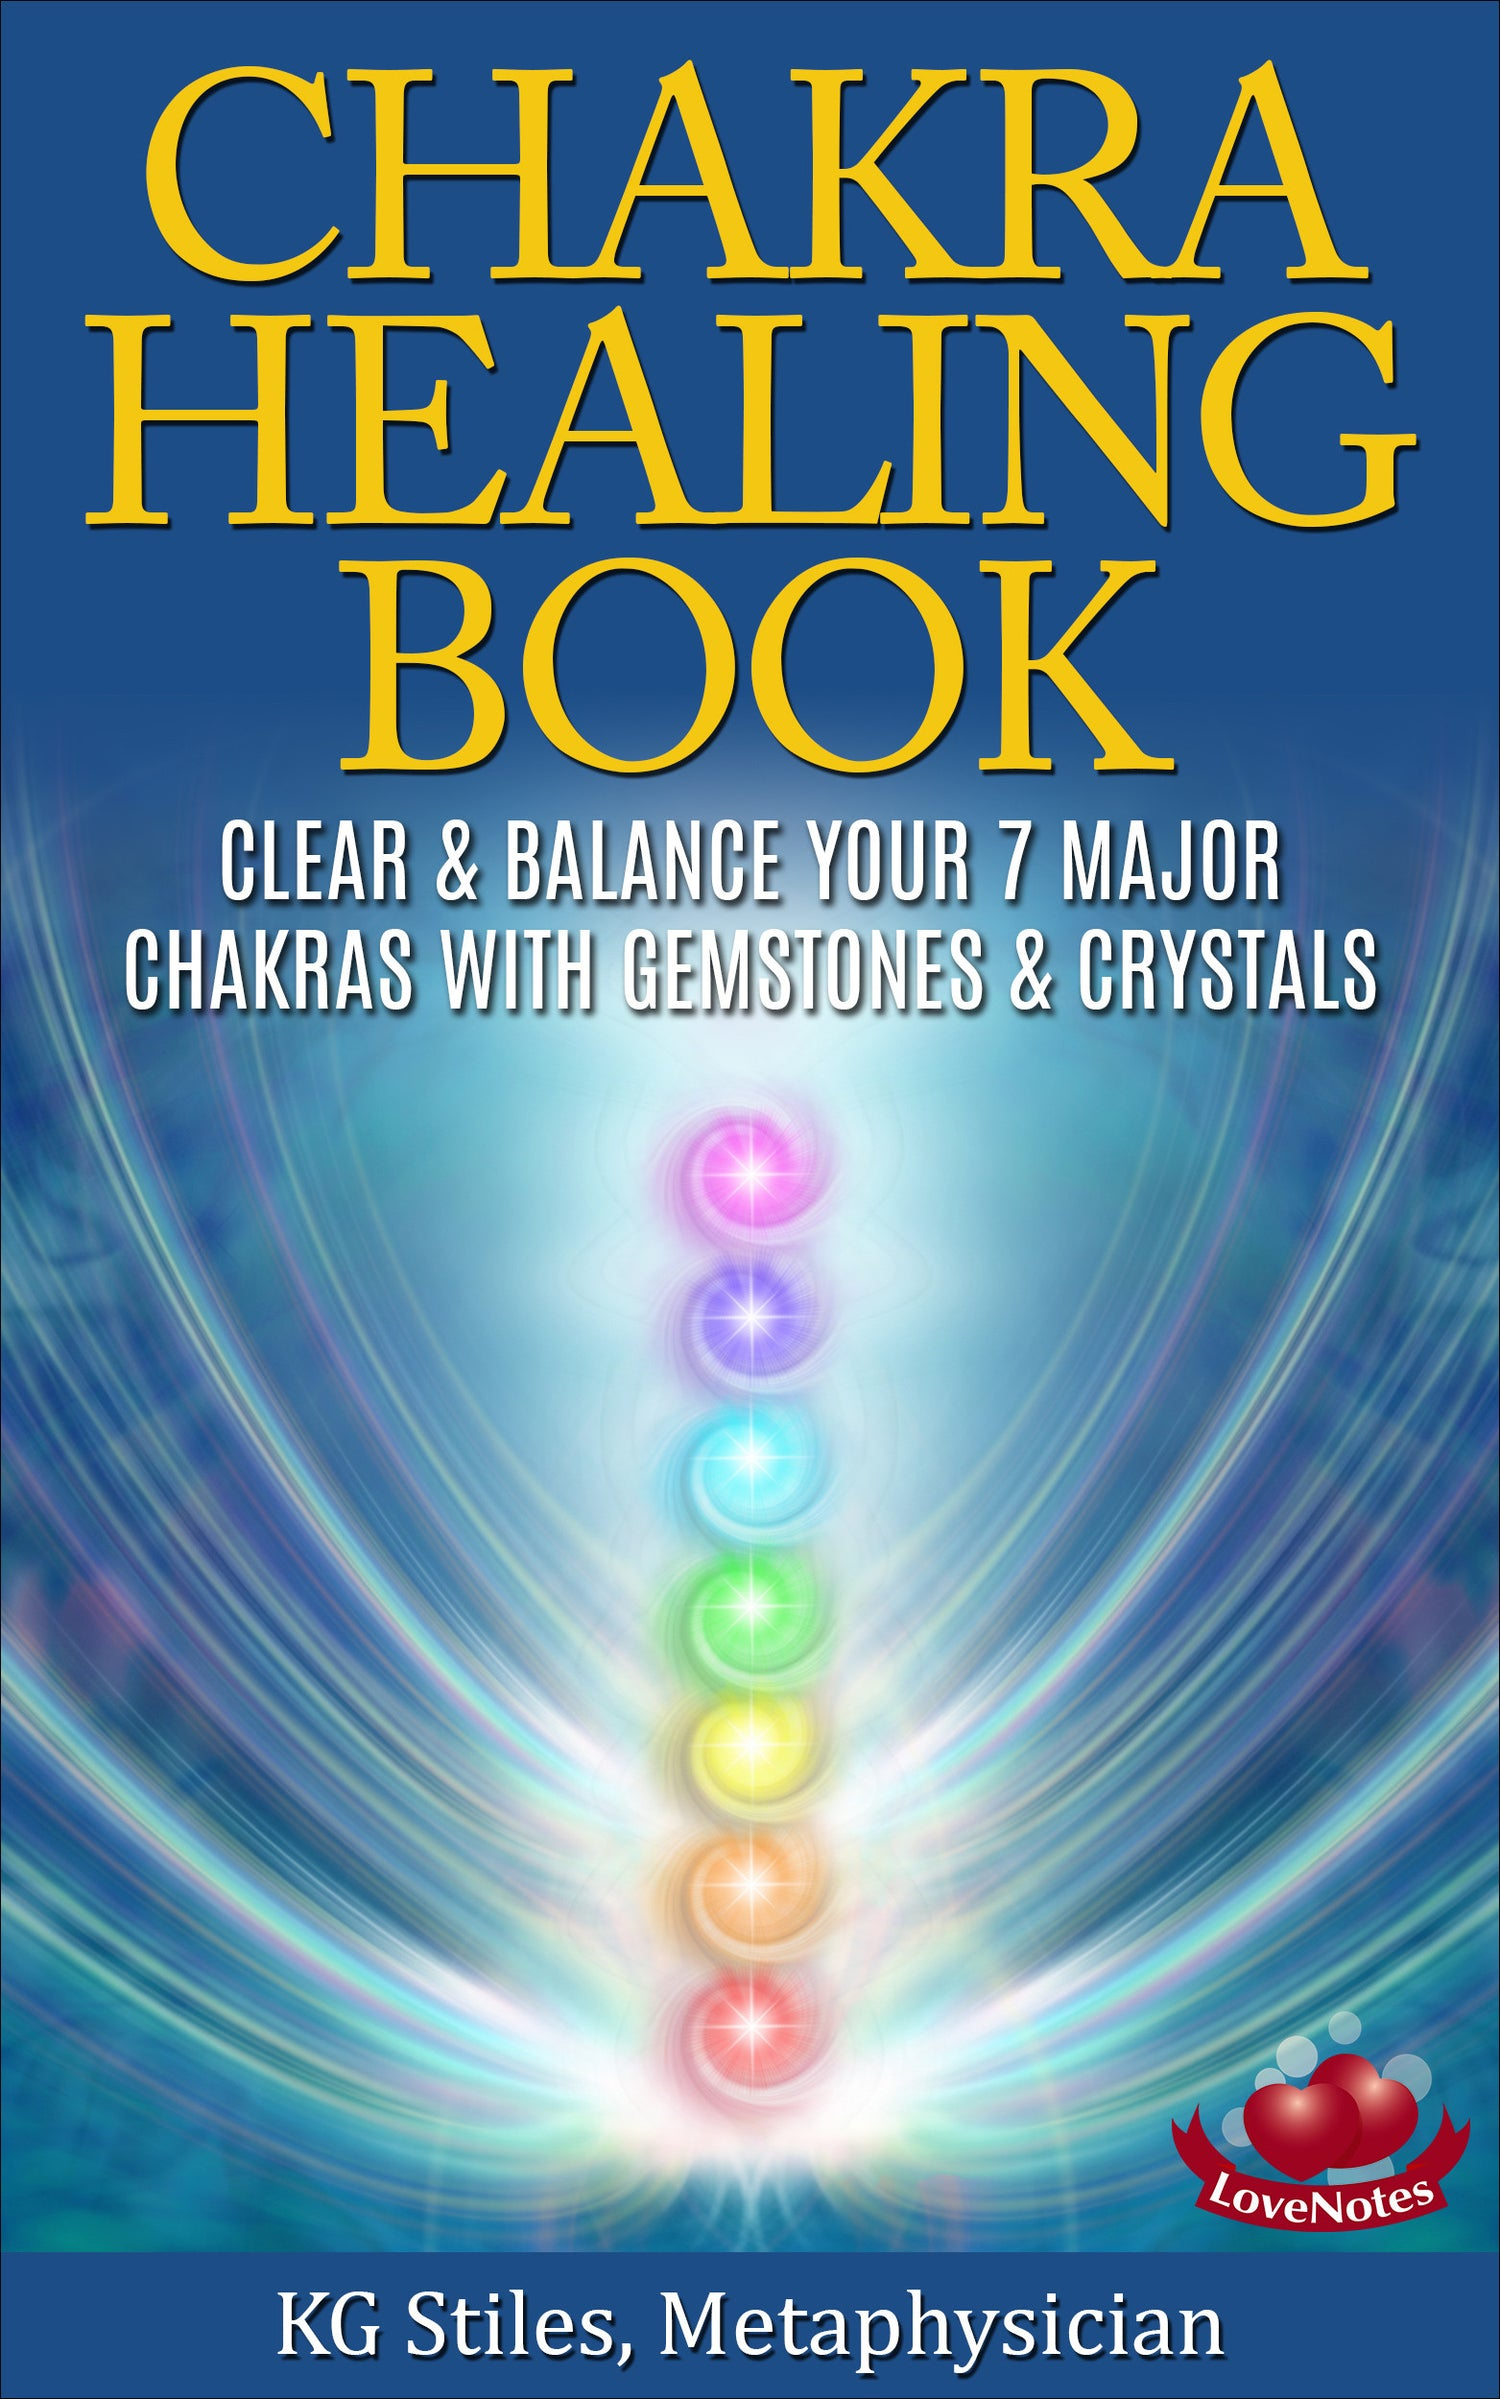 CHAKRA HEALING BOOK Clear & Balance Your 7 Major Chakras with Gemstones &  Crystals